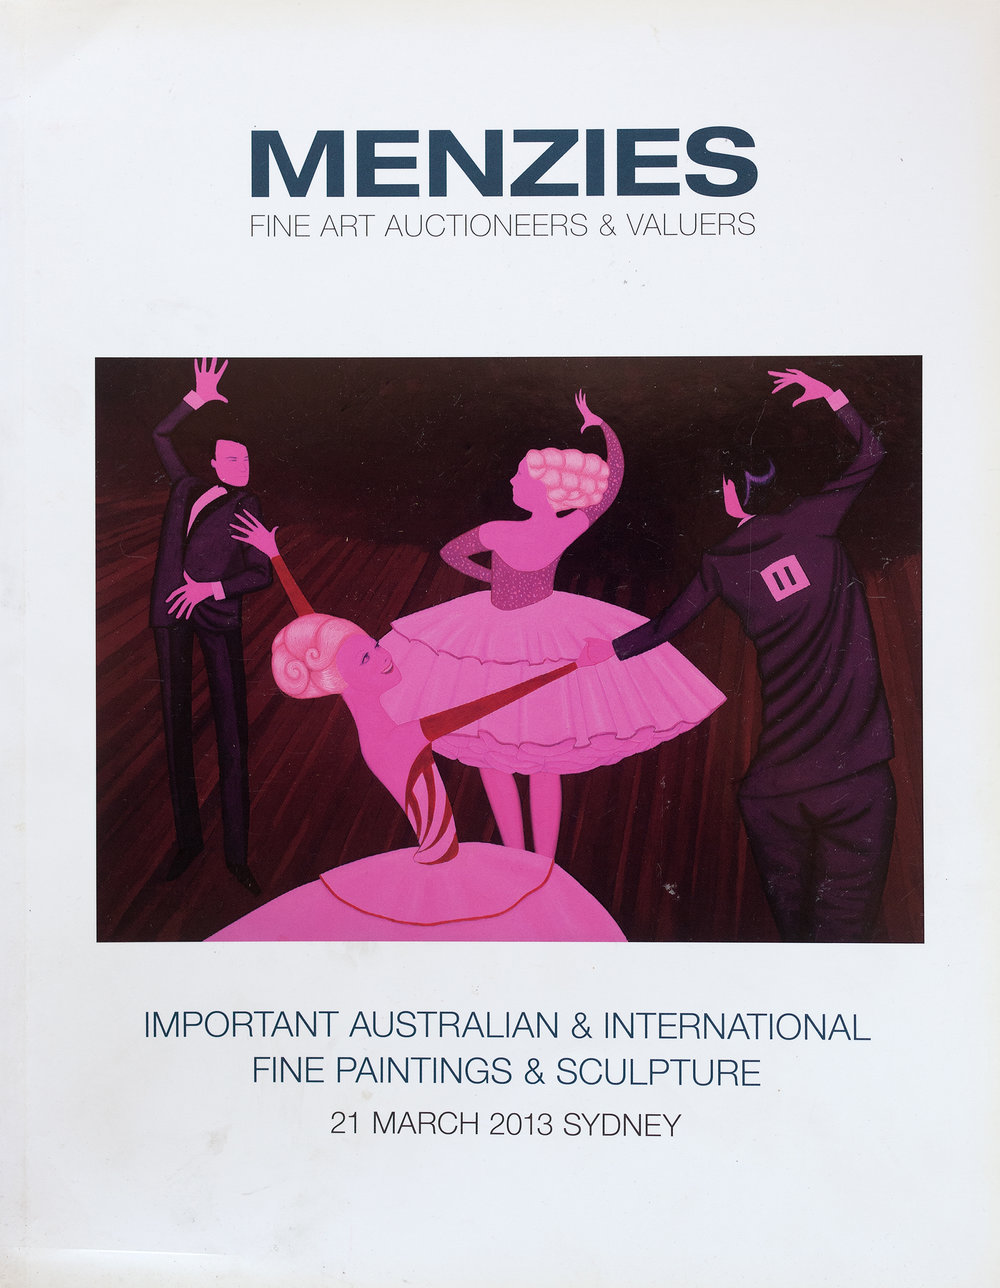 171023 Menzies Catalogues_021.jpg